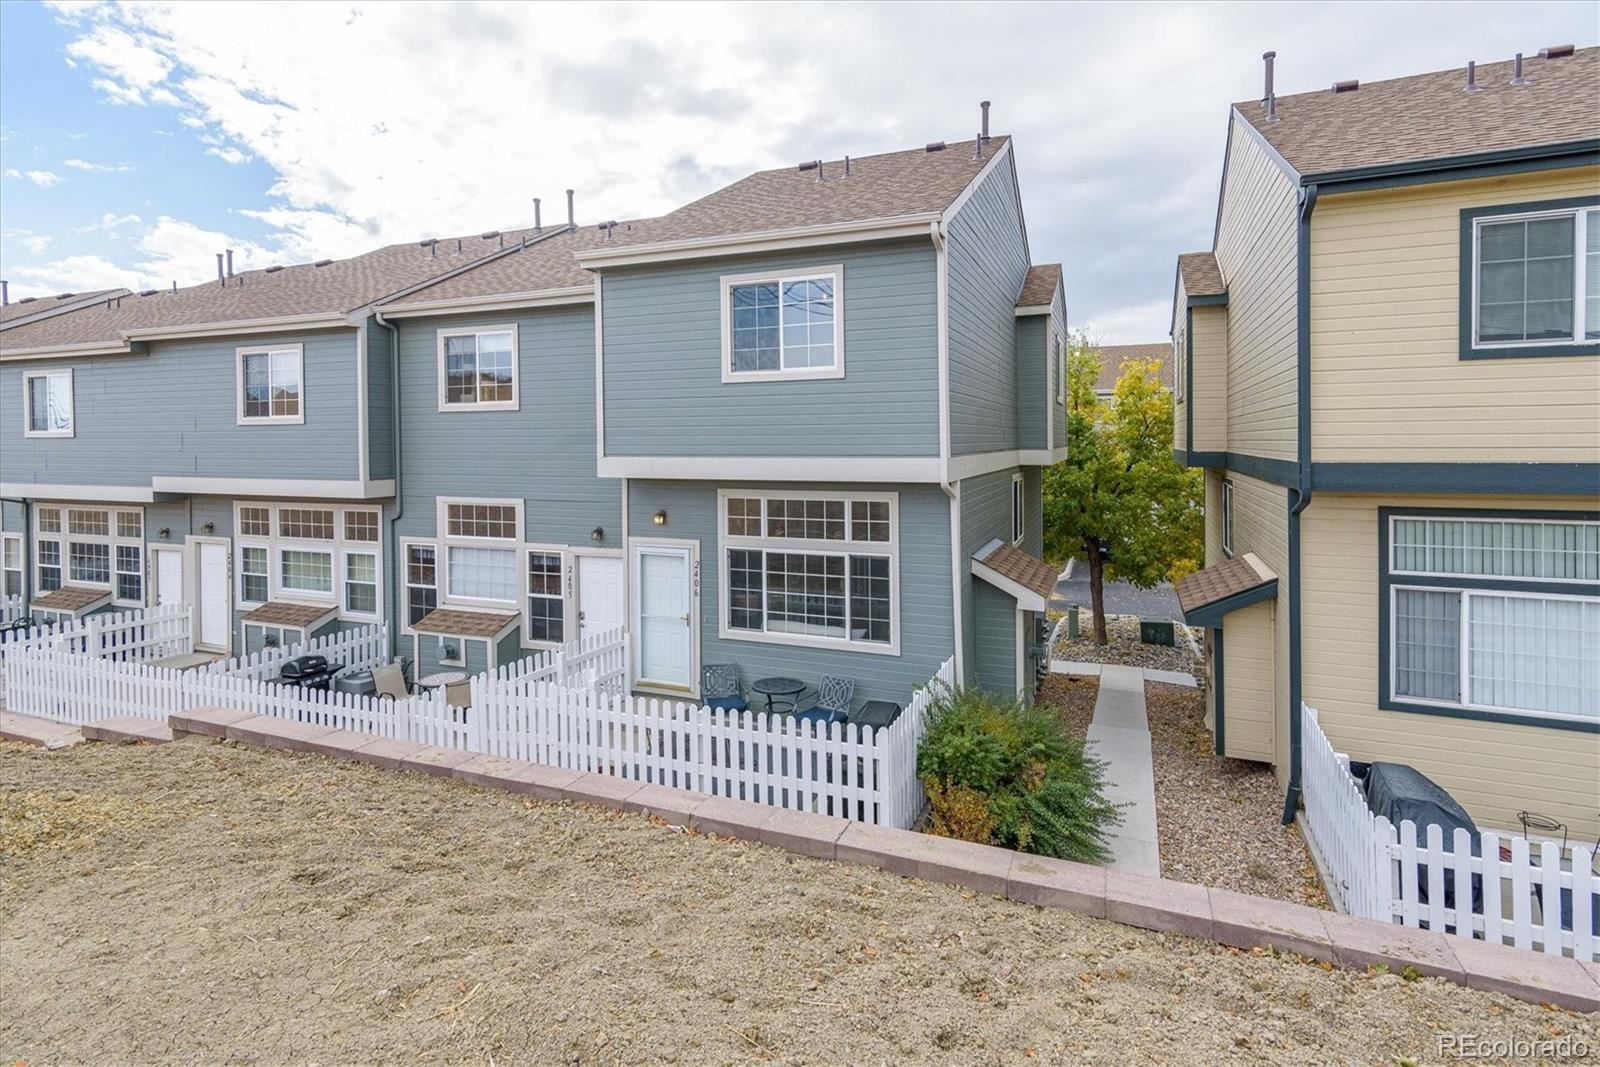 Photo of 8199 Welby Road #2406, Thornton, CO 80229 (MLS # 4727304)